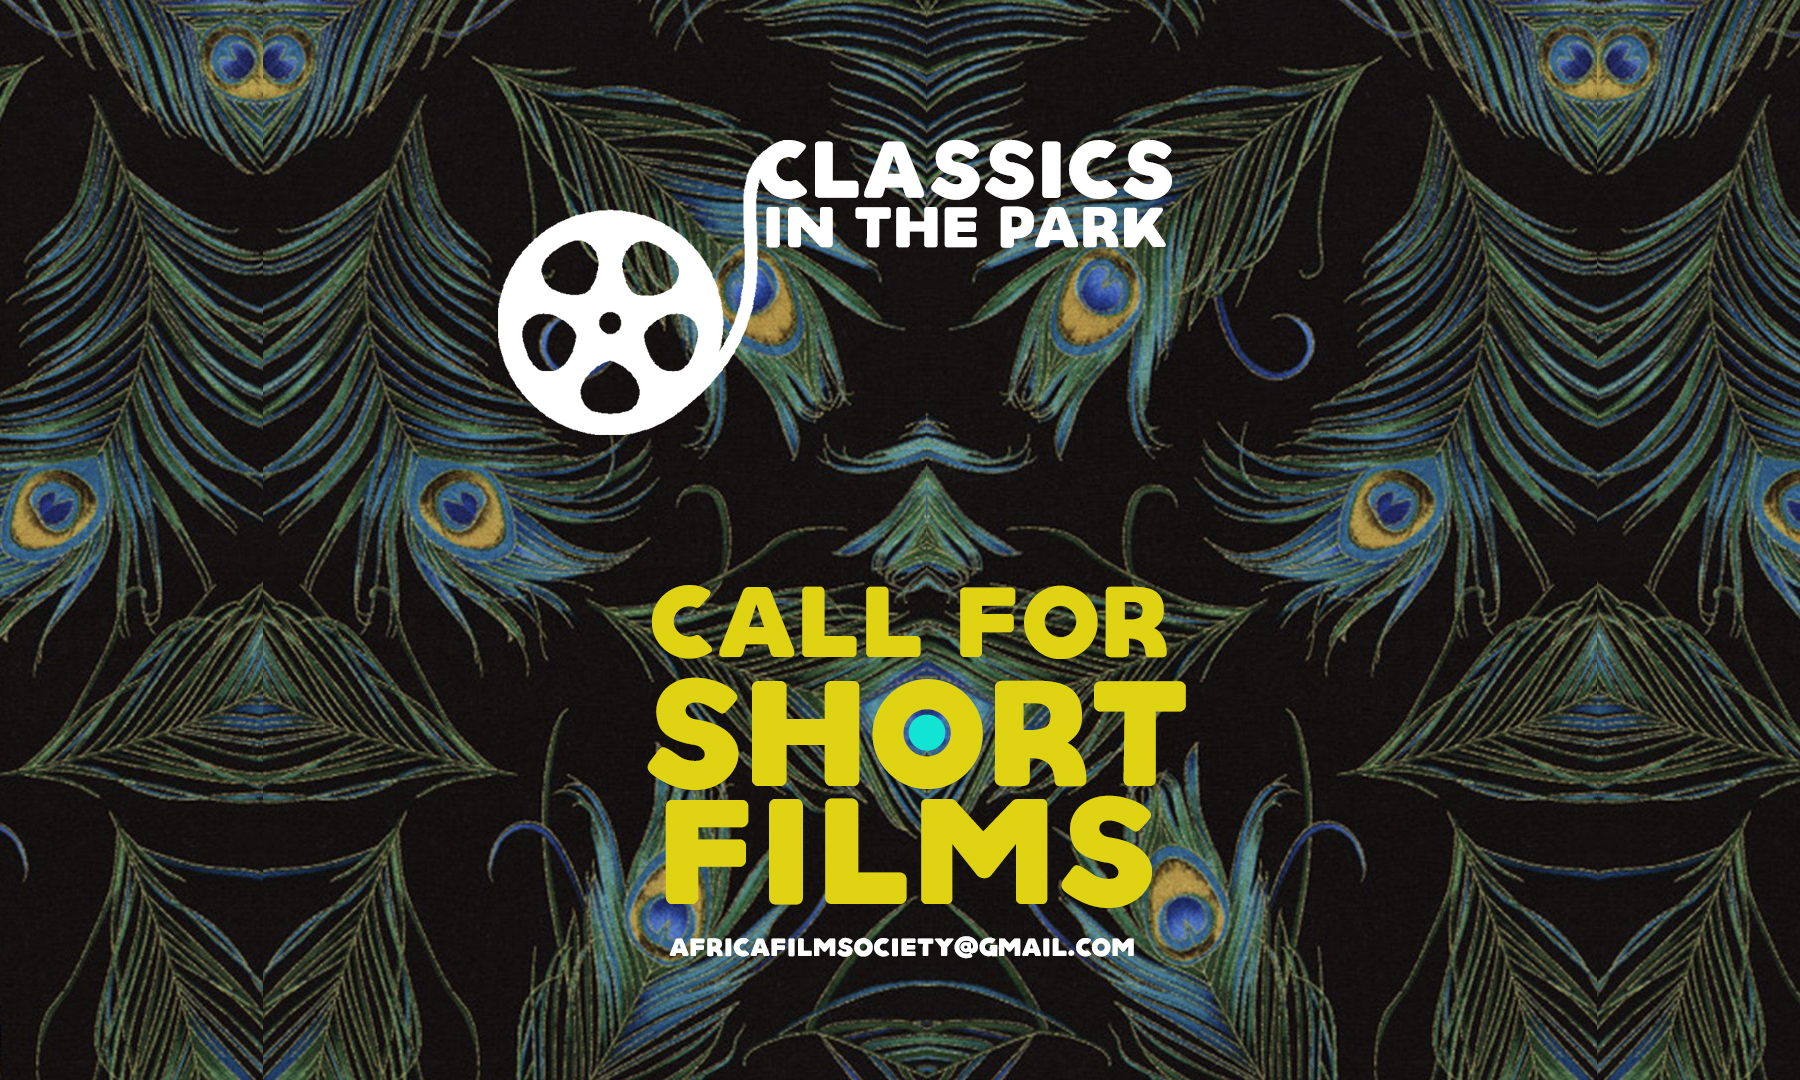 Africa Film Society is proud to announce our 2nd Season of Classics In The Park will feature a selection of short films from contemporary African filmmakers on the Continent and in the Diaspora. Our call for short films submission is now open.  Below are Eligibility and Submission Guidelines.    1. Short-length (under 20 minute) narrative, documentary, animated and experimental films.   2. No Submission Fee required.  3. As applicable, a password protected streaming link of the film must be submitted to africafilmsociety@gmail.com. Submission must include:  a) Title of Film  b) Name of Director  c) Year of Production   d) Name, Email, Phone Number and Title of Applicant. (ie: Director, Producer, Distributor etc)  4. Non-English language works must have English subtitles at the time submitted  5. ALL territories and countries are eligible. Director or Producer of film MUST be of African descent.   6. Only one film submission per applicant.  7. Submission Deadline is July 30th 11pm GMT